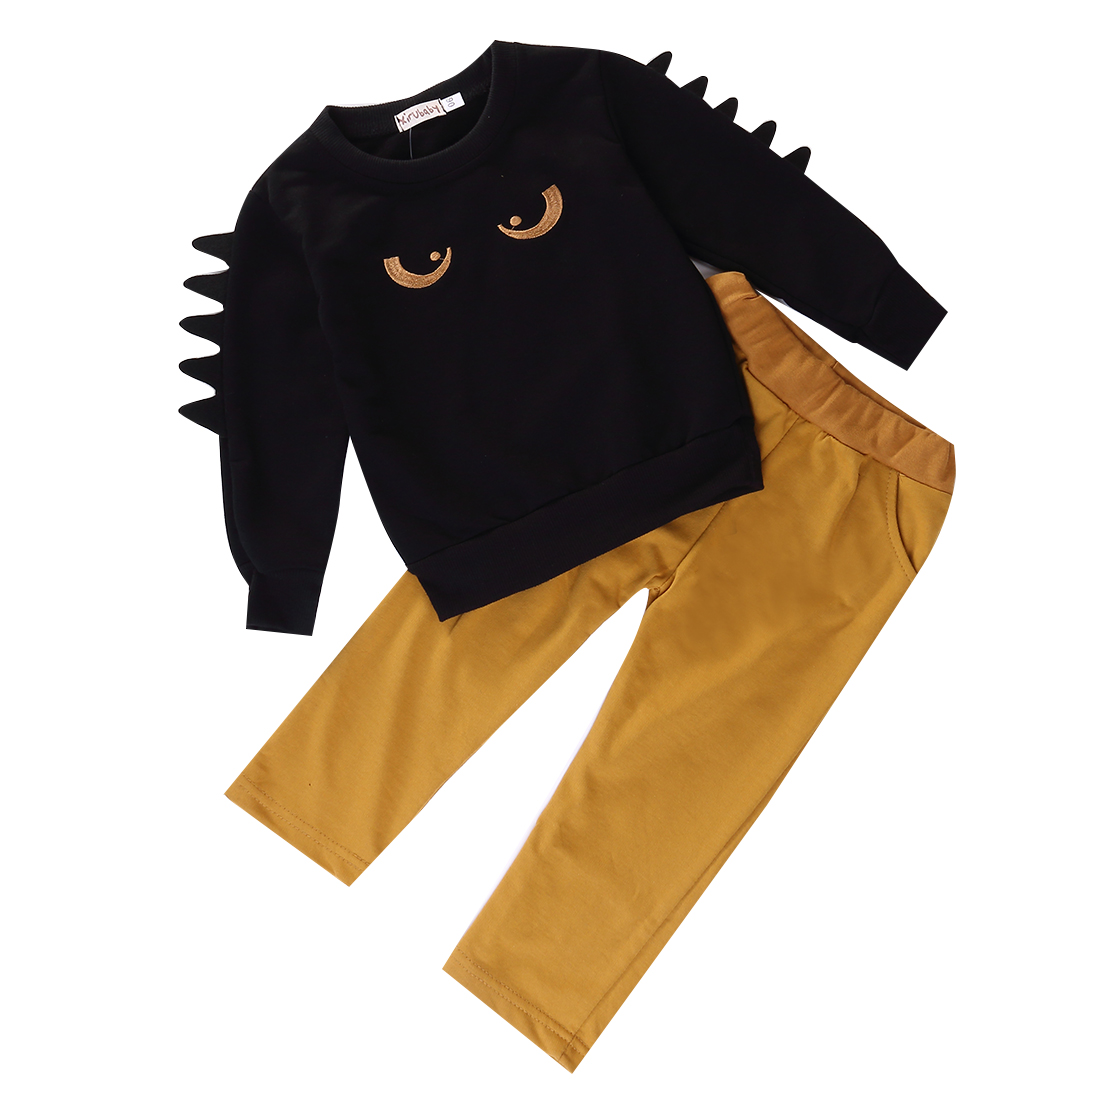 2018 Fashion Cute Monster Baby Boy Kids Long Sleeve Sweat Pullove Jumper Top & Pant Outfit Set Clothes 2PCS